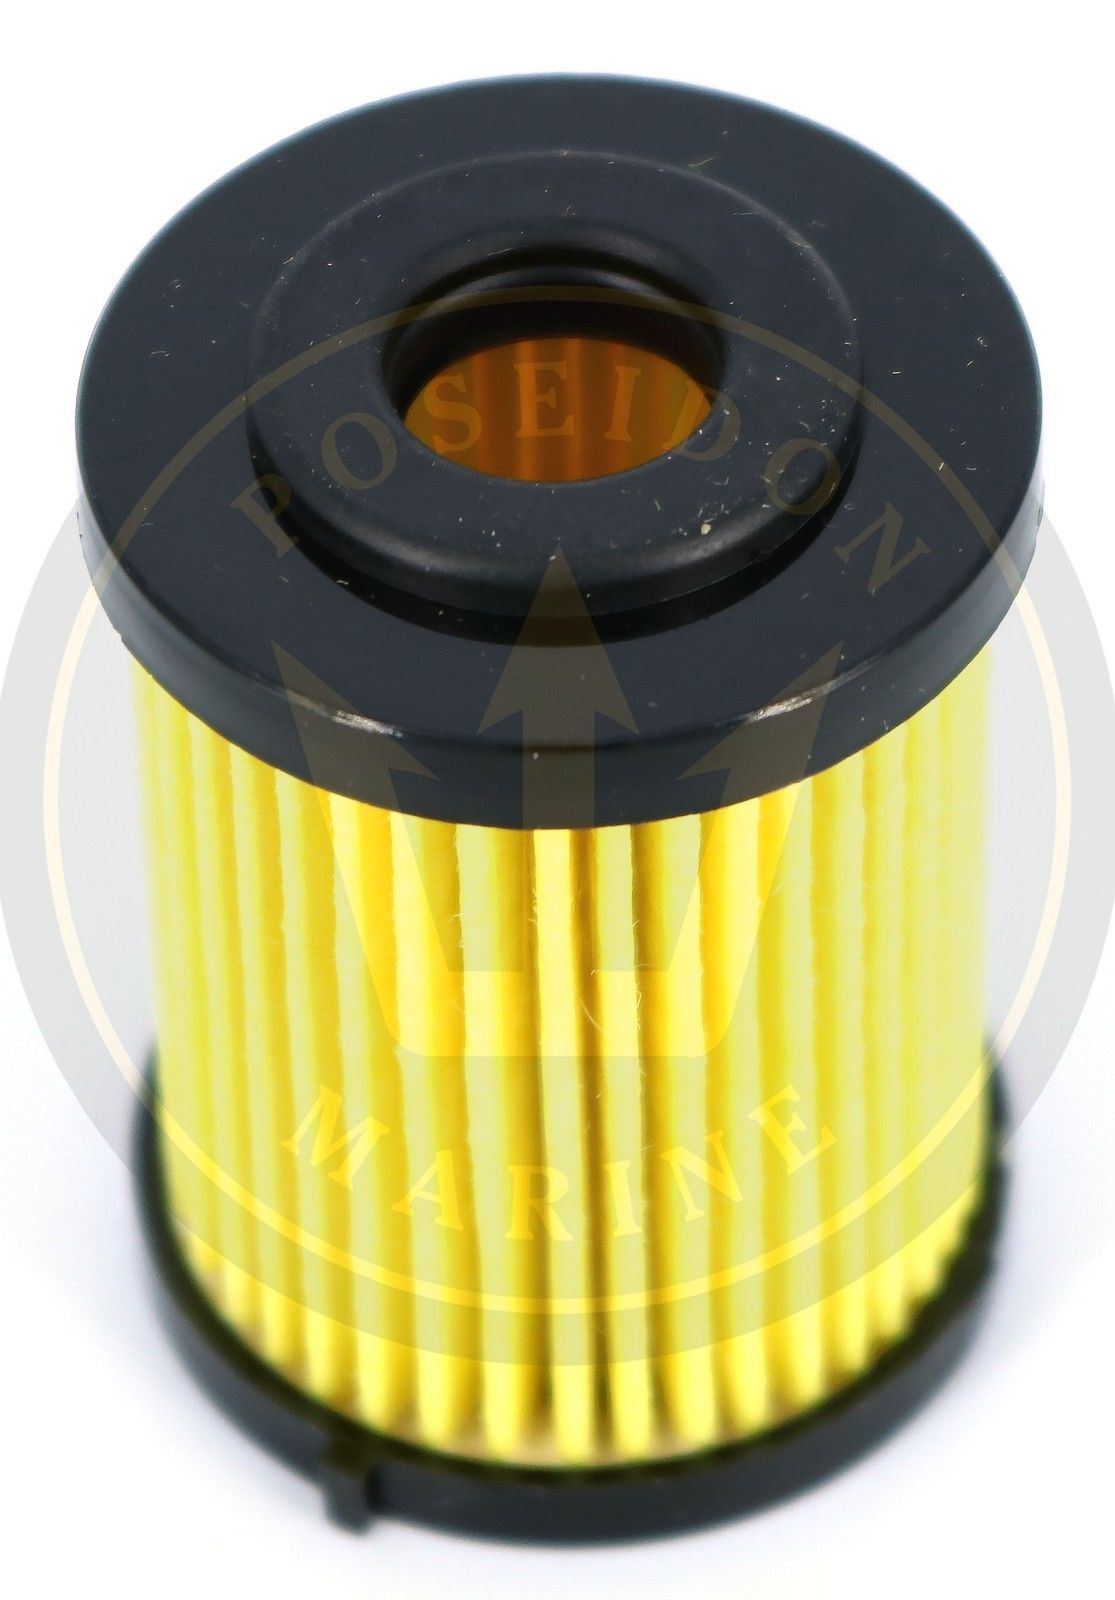 yamaha outboard fuel filter fuel filter element for yamaha 6p3 ws24a 00 150 200 225 250 300hp yamaha outboard fuel filter housing fuel filter element for yamaha 6p3